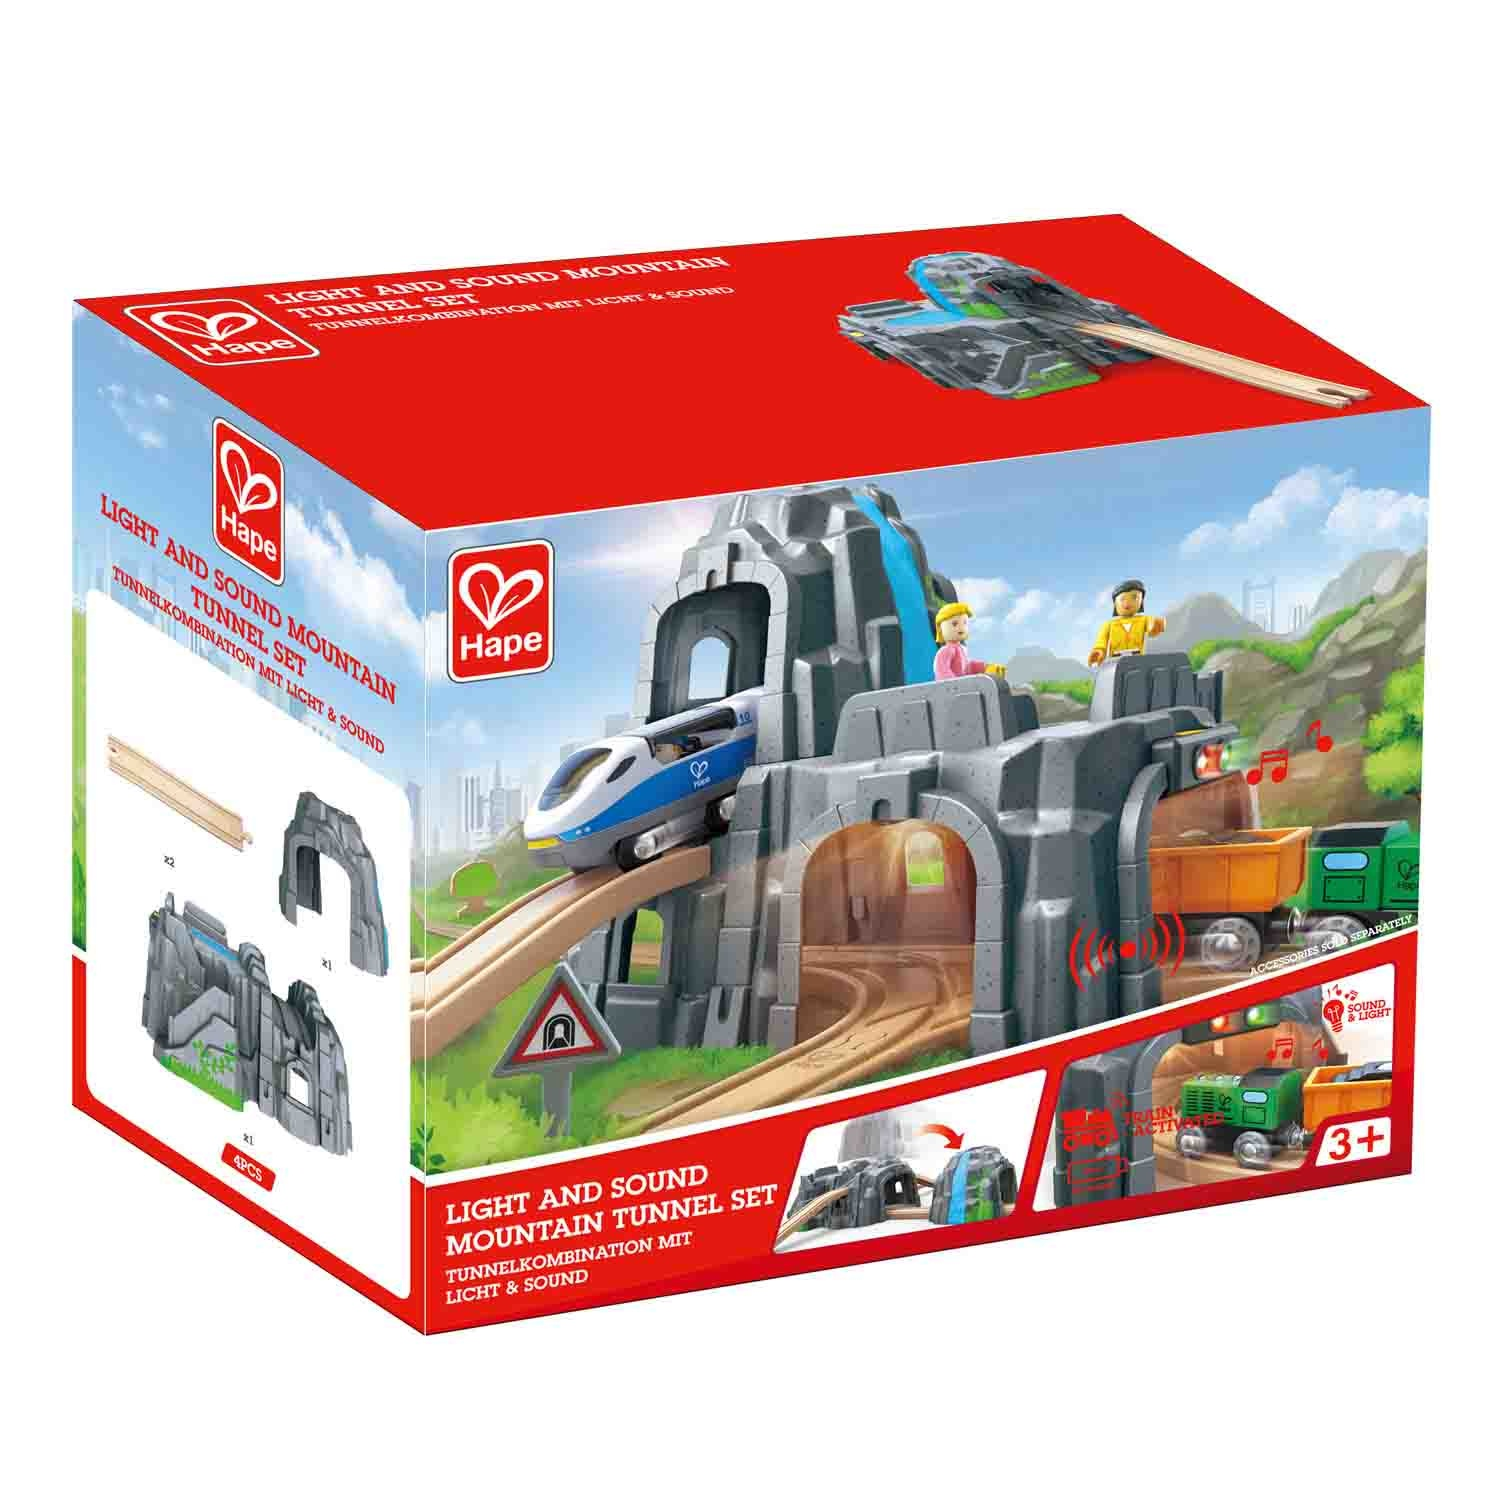 Hape Light and Sound Mountain Tunnel Set